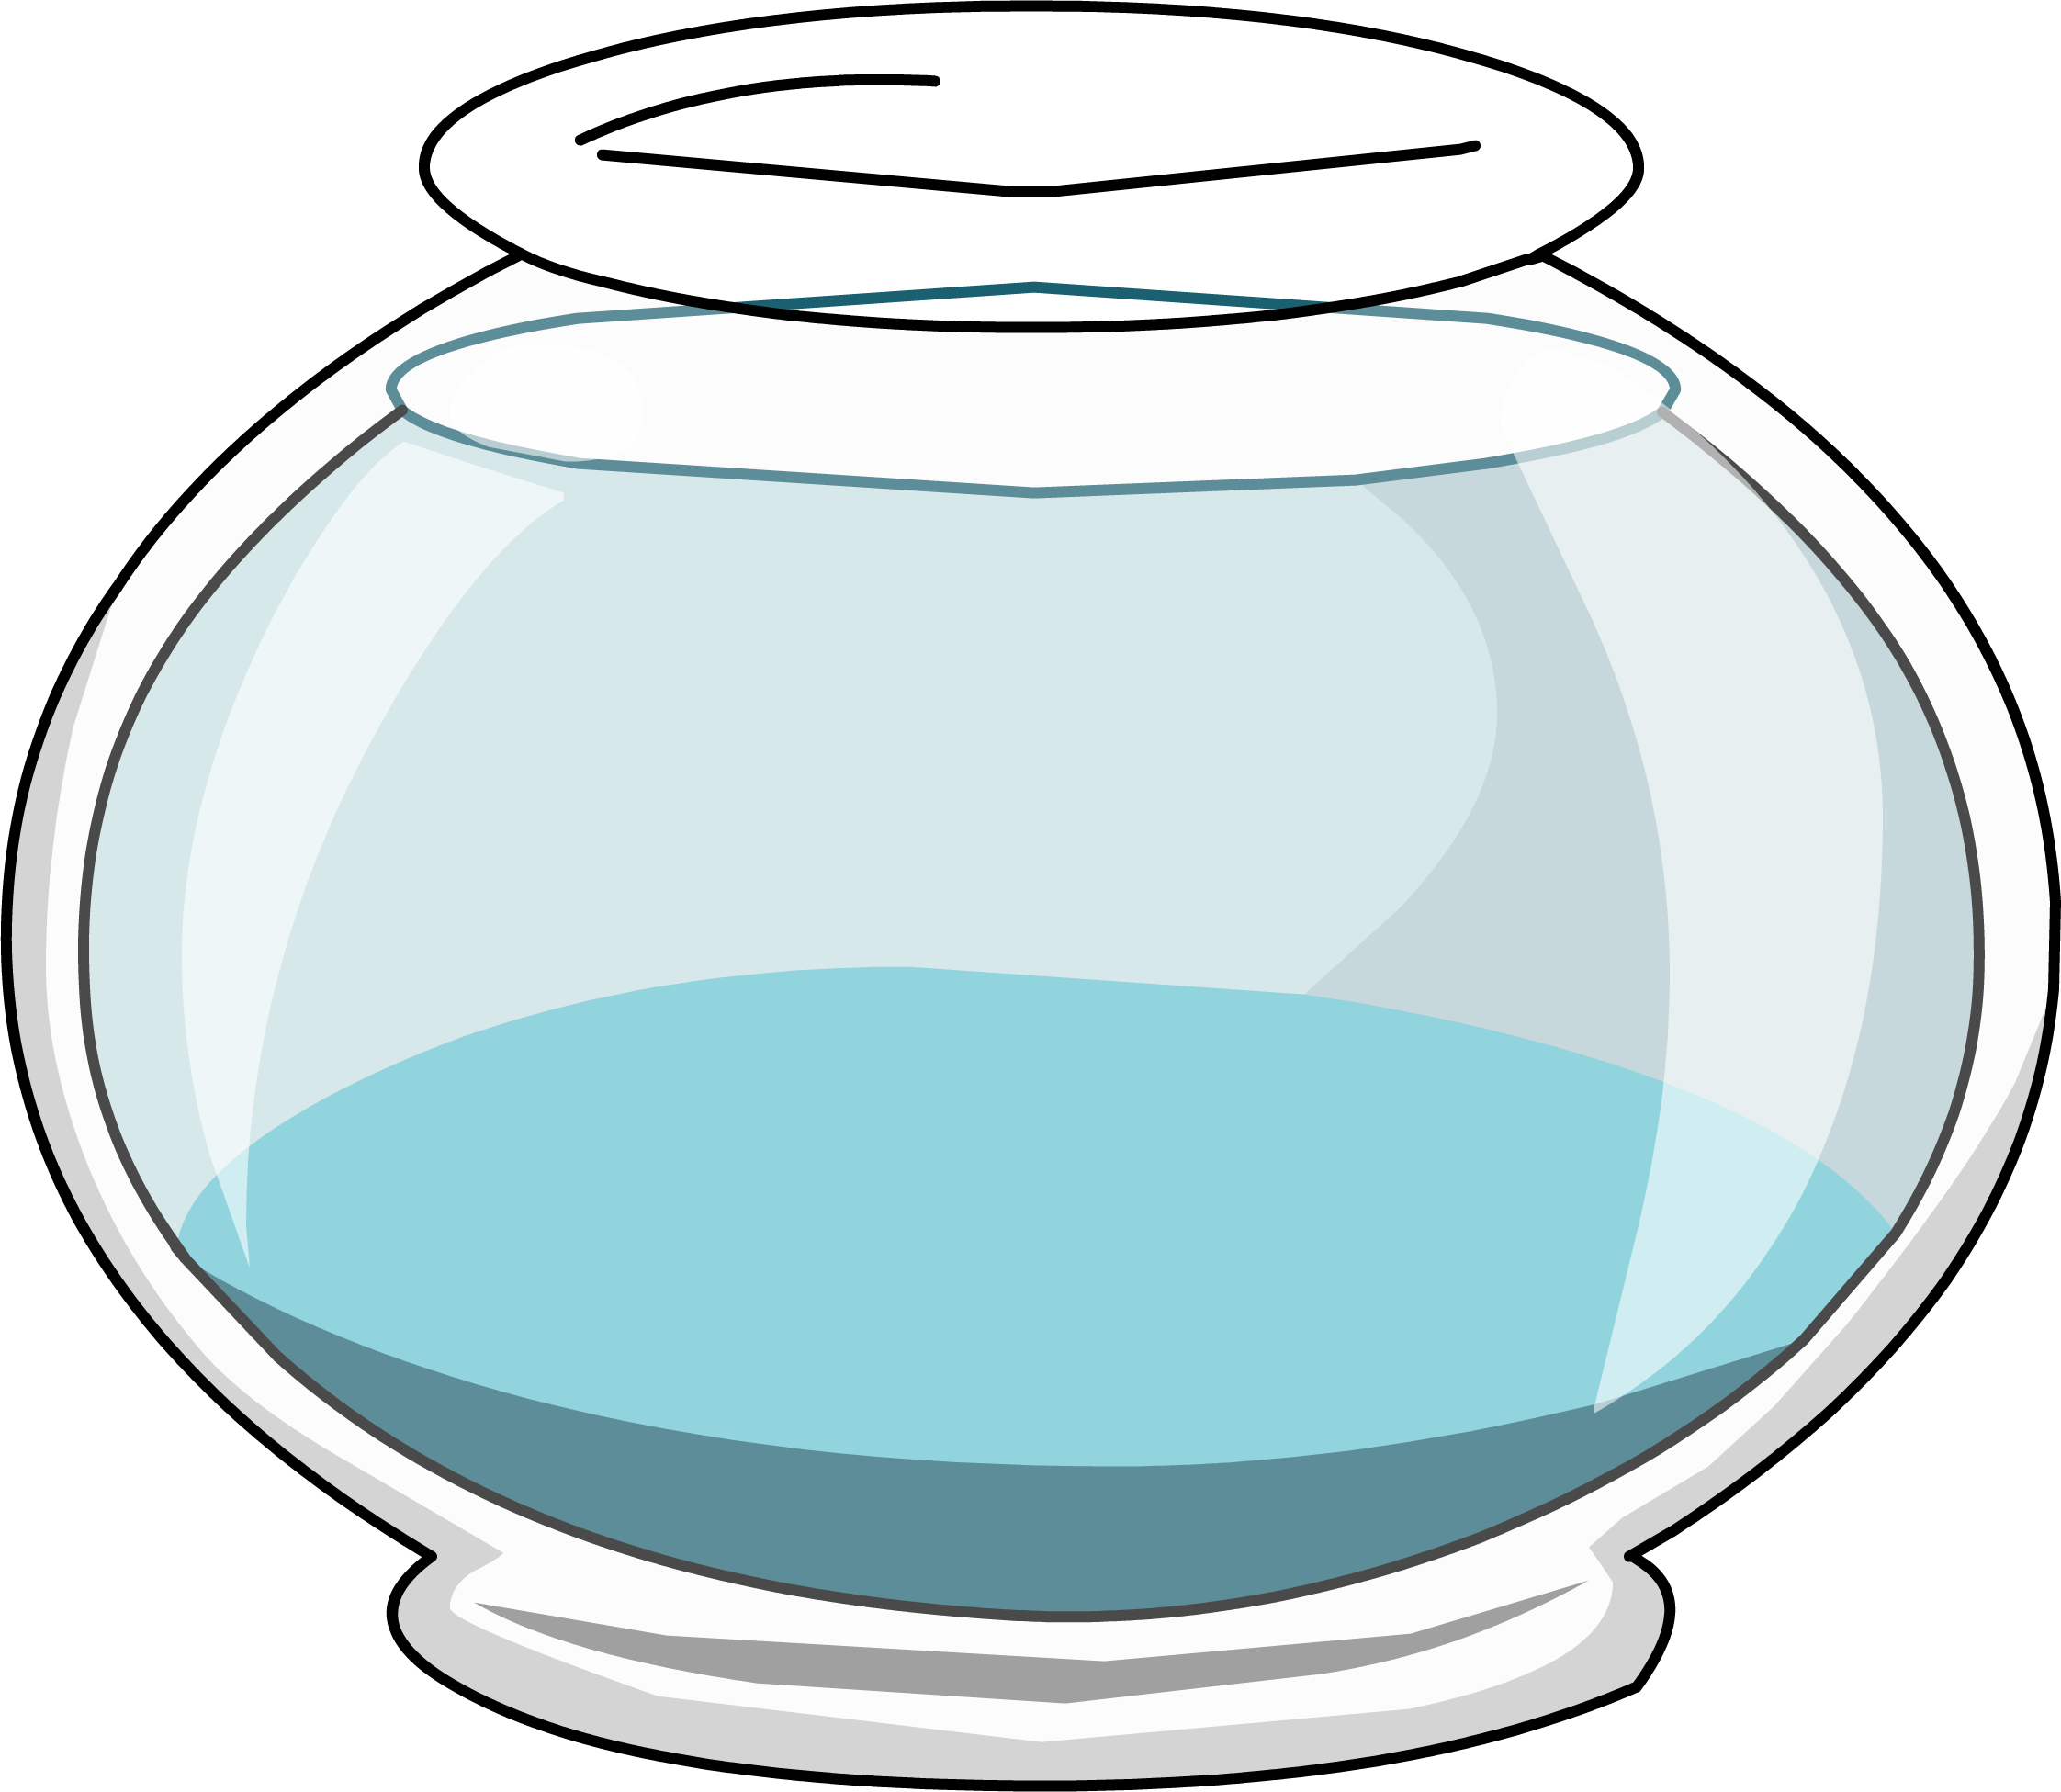 Fishbowl free bowl pictures. Fish in a tank clipart